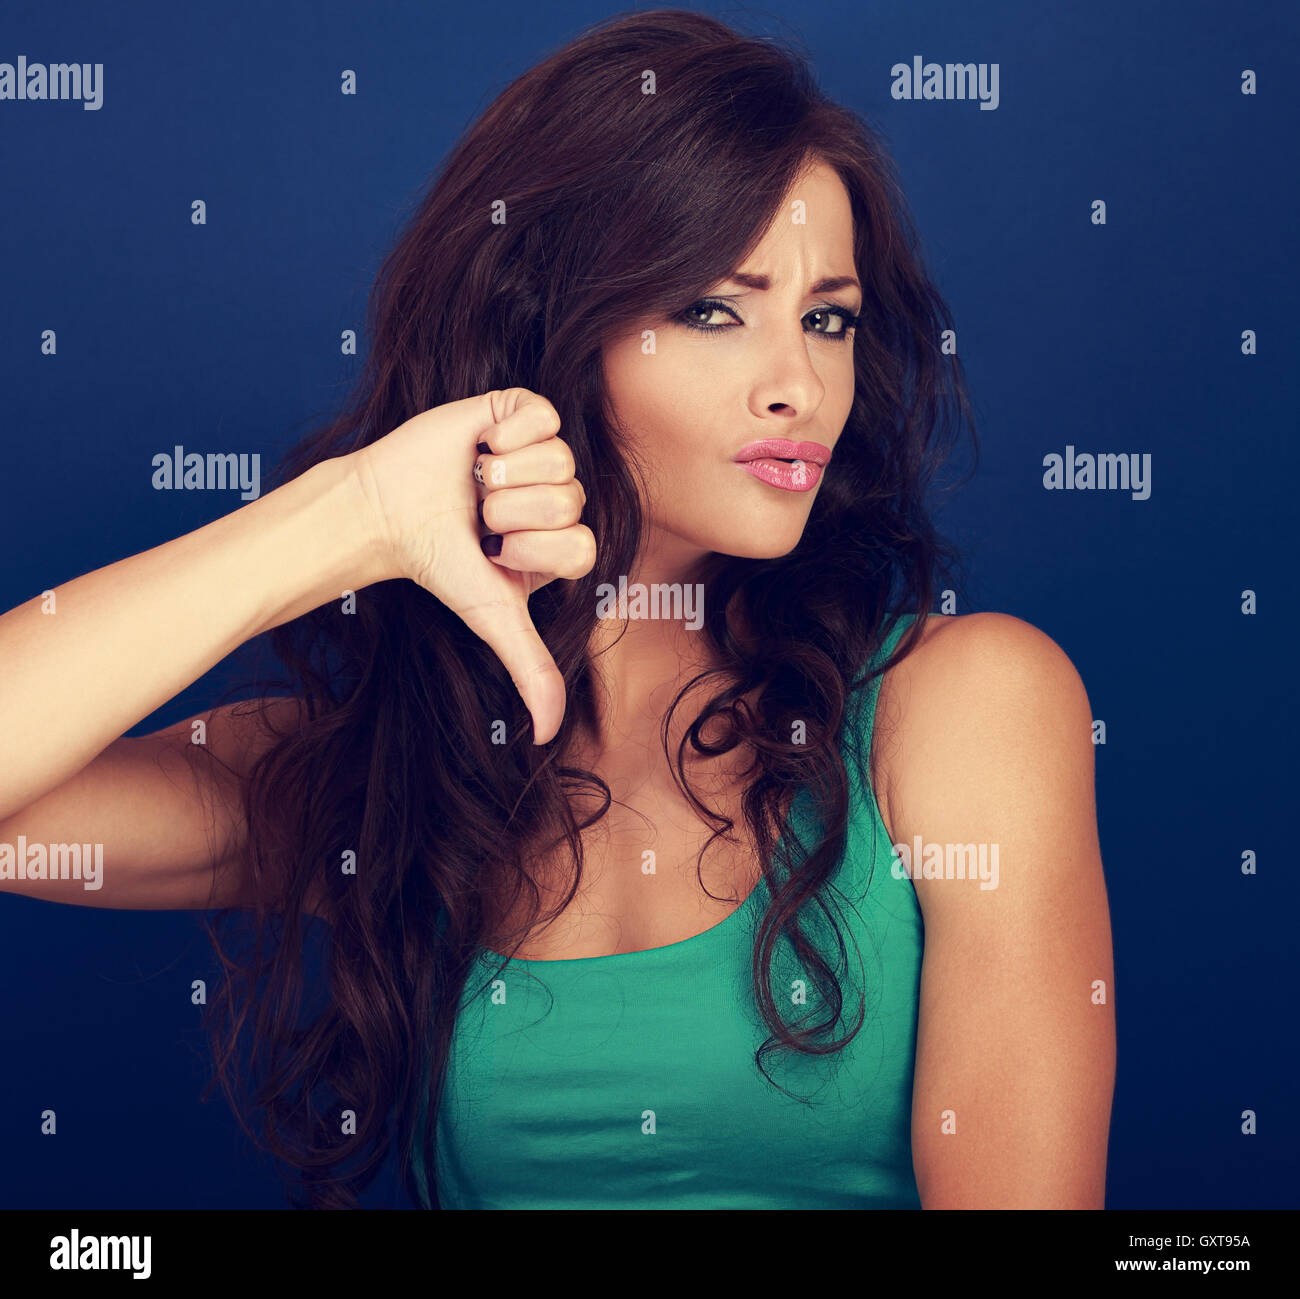 Beautiful grimacing woman with long curly hair showing refuse sign and gesturing thumb down on blue background. - Stock Image